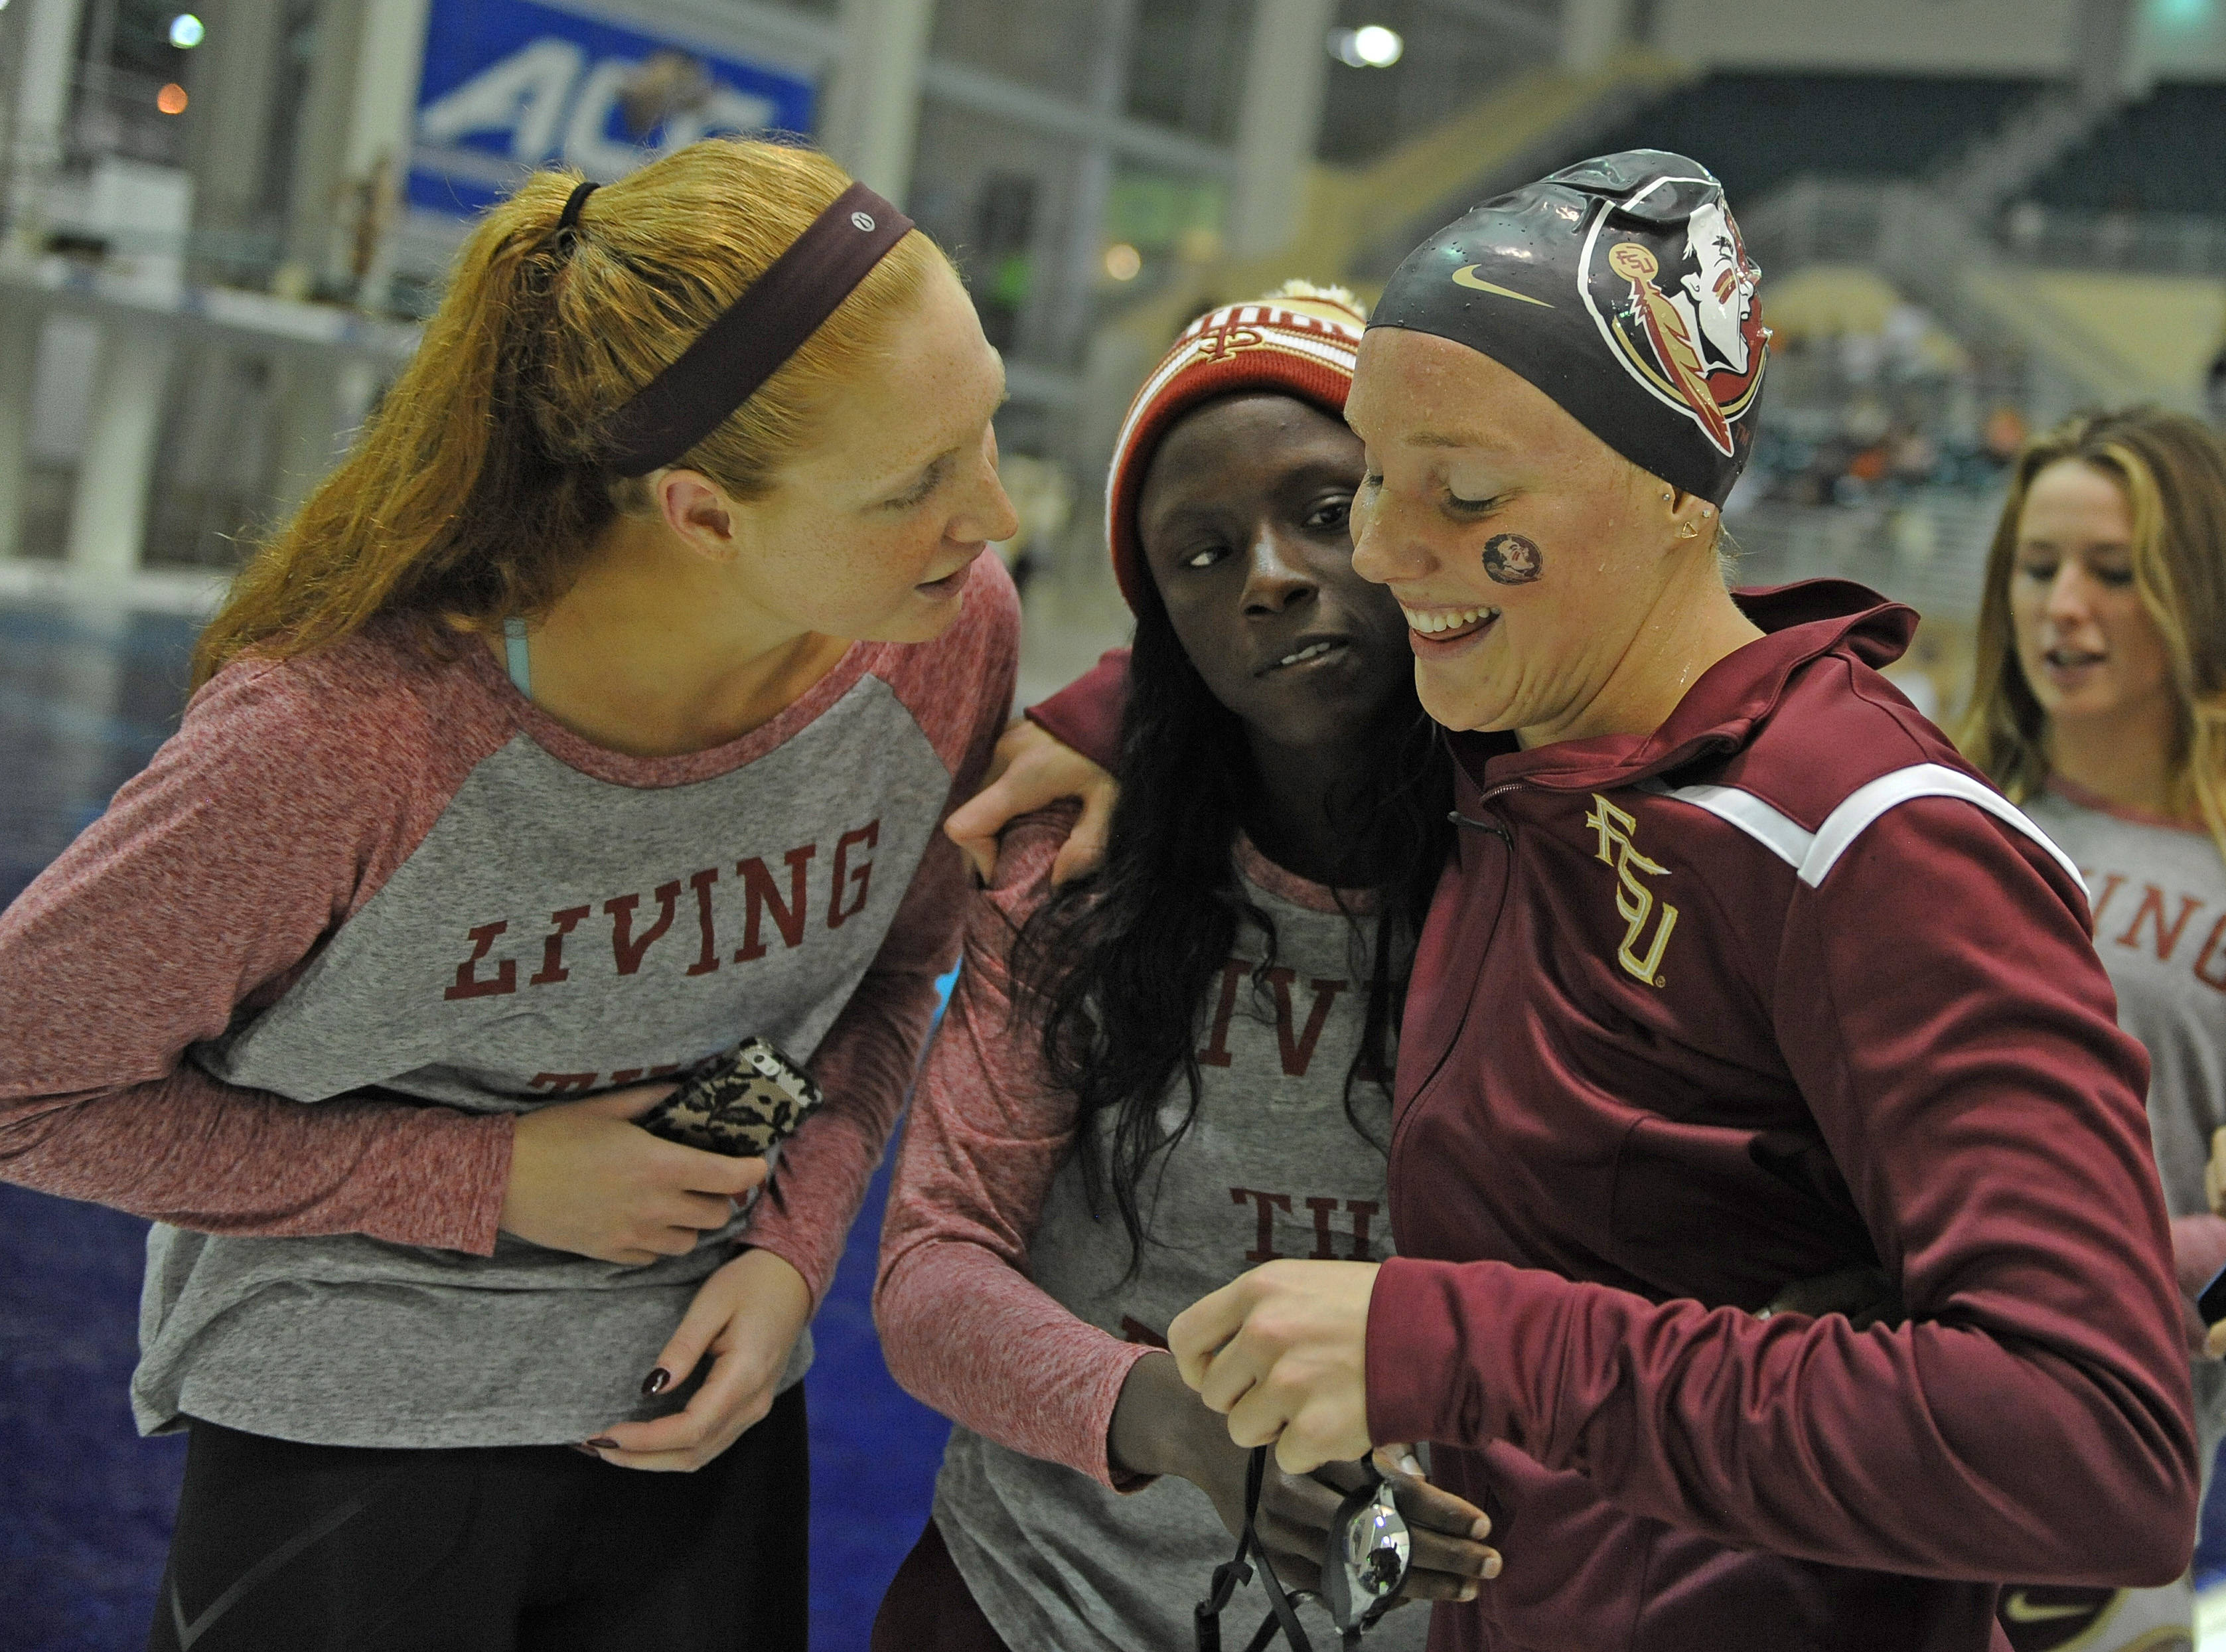 Haley Powell and Alexi Smith hug Kaitlyn Dressel after her race - Mitch White